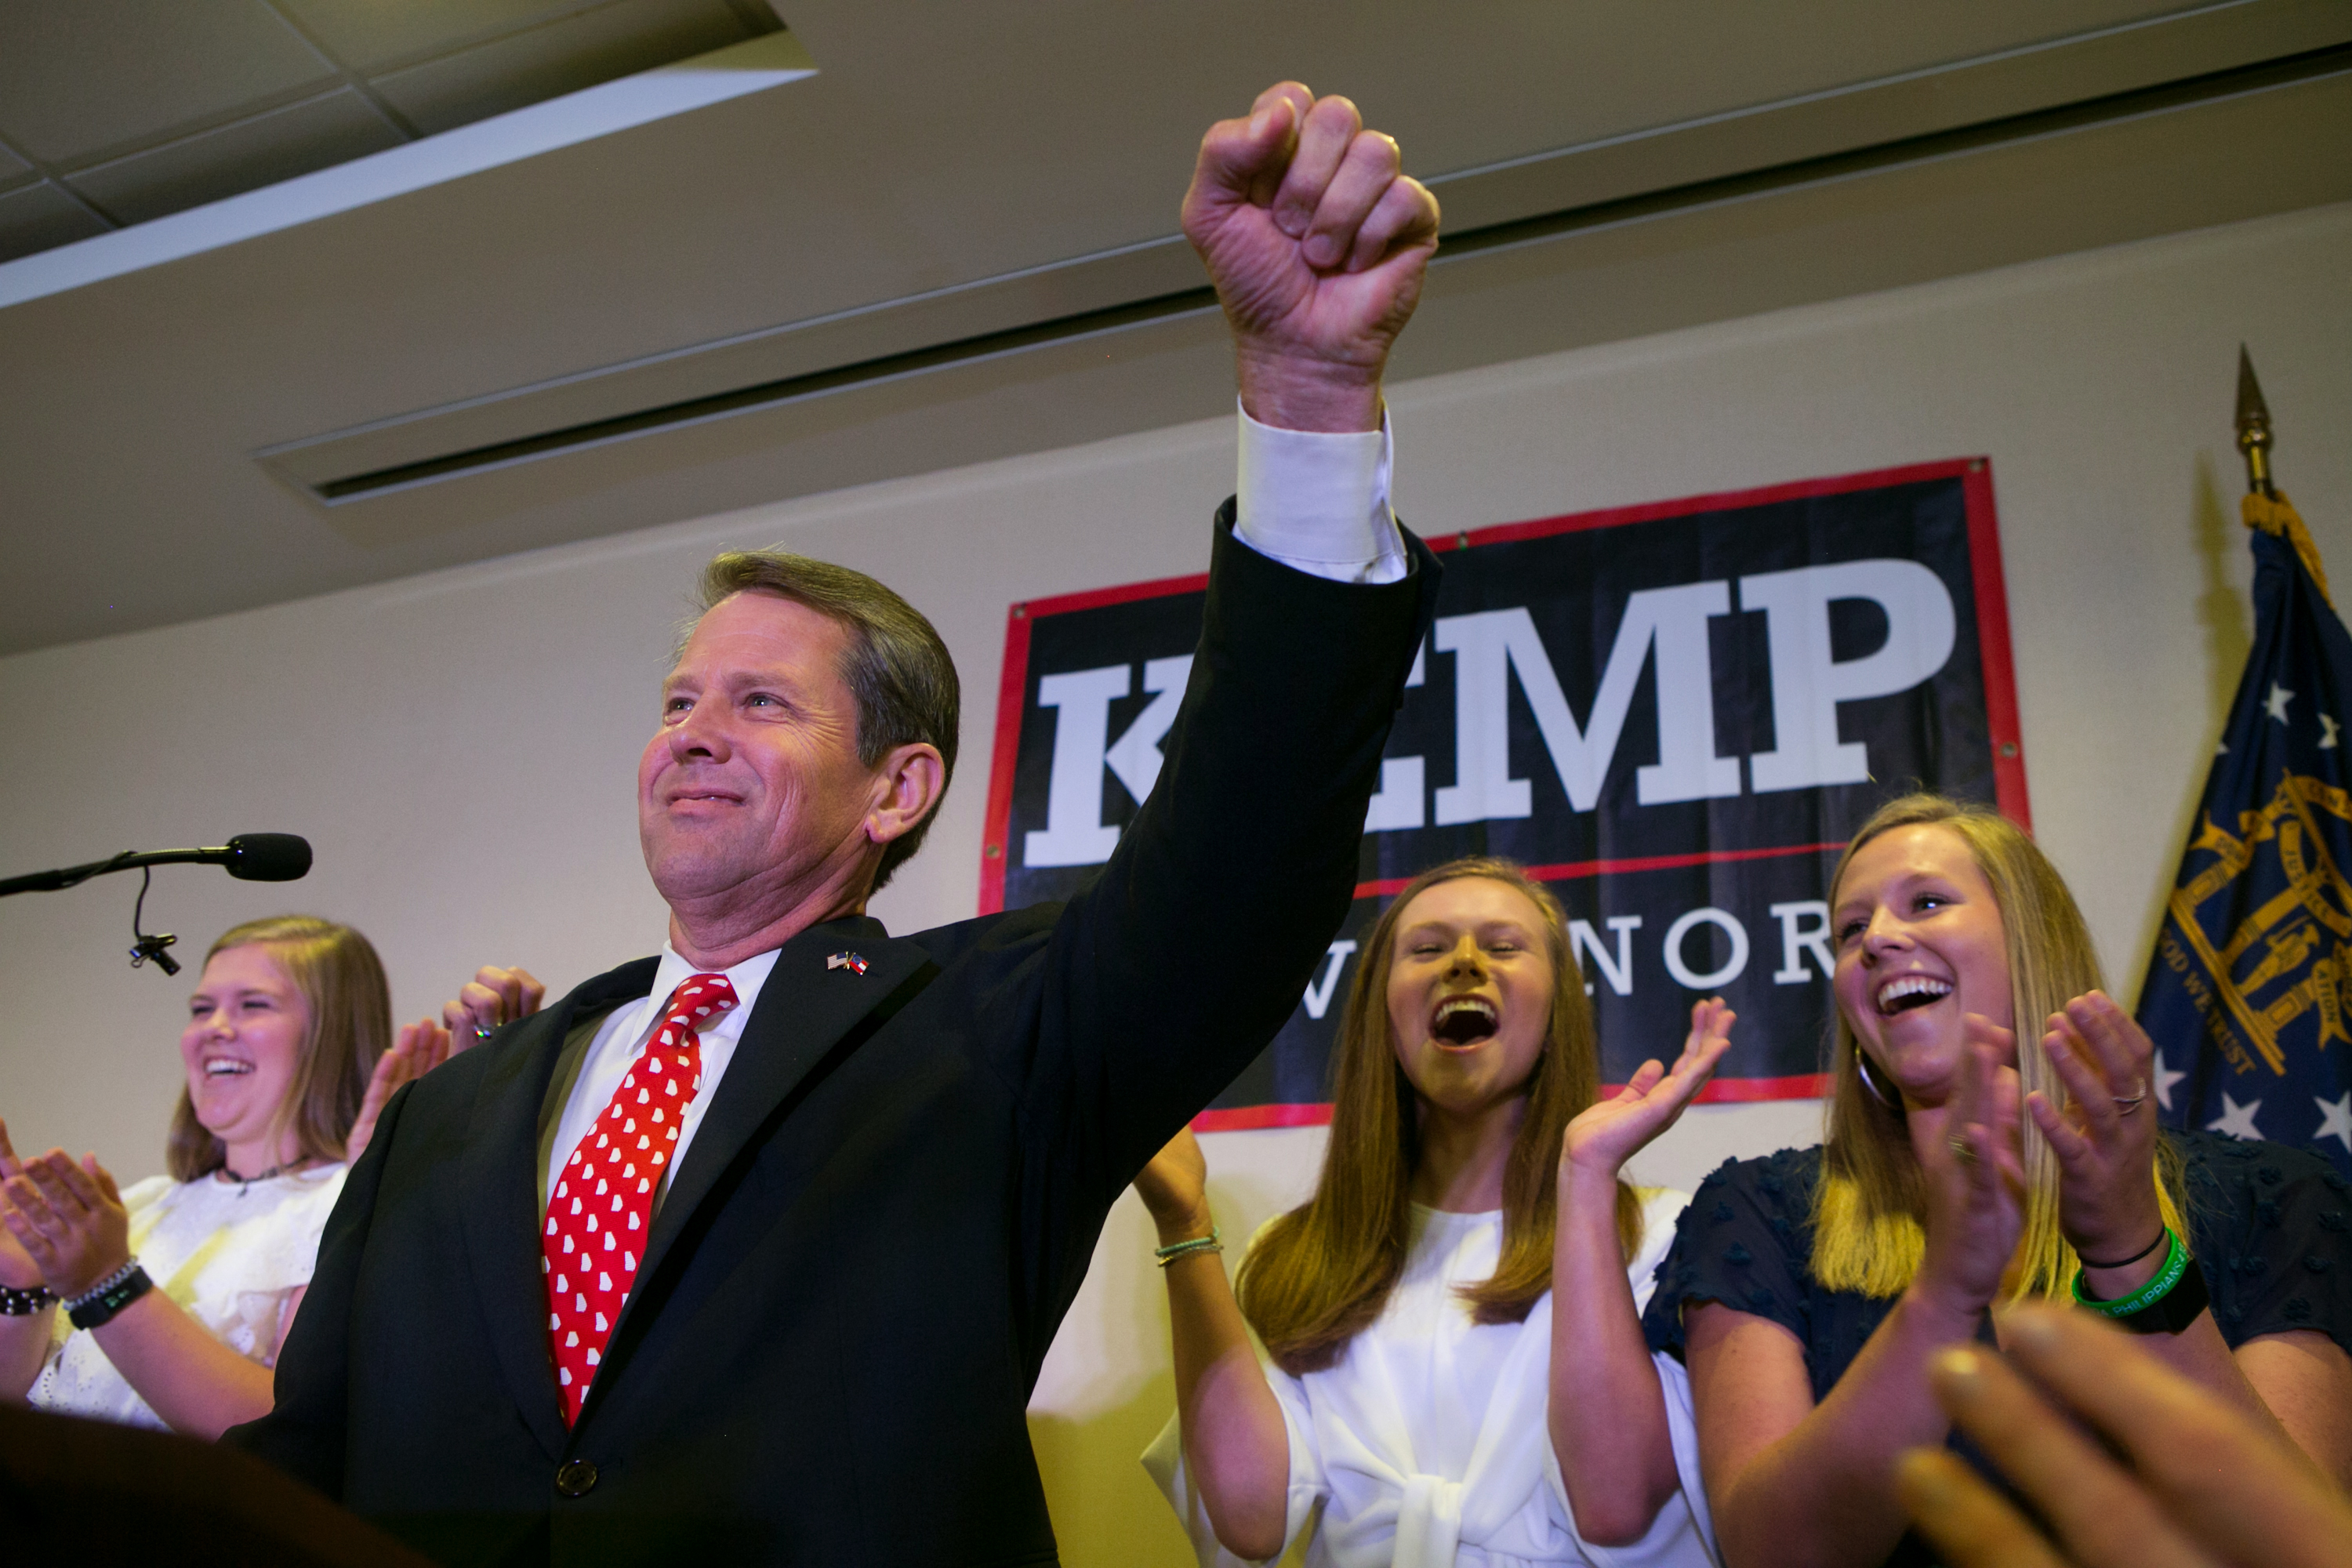 Secretary of State and Republican Gubernatorial candidate Brian Kemp addresses the audience and declares victory during an election watch party on July 24, 2018 in Athens, Georgia.